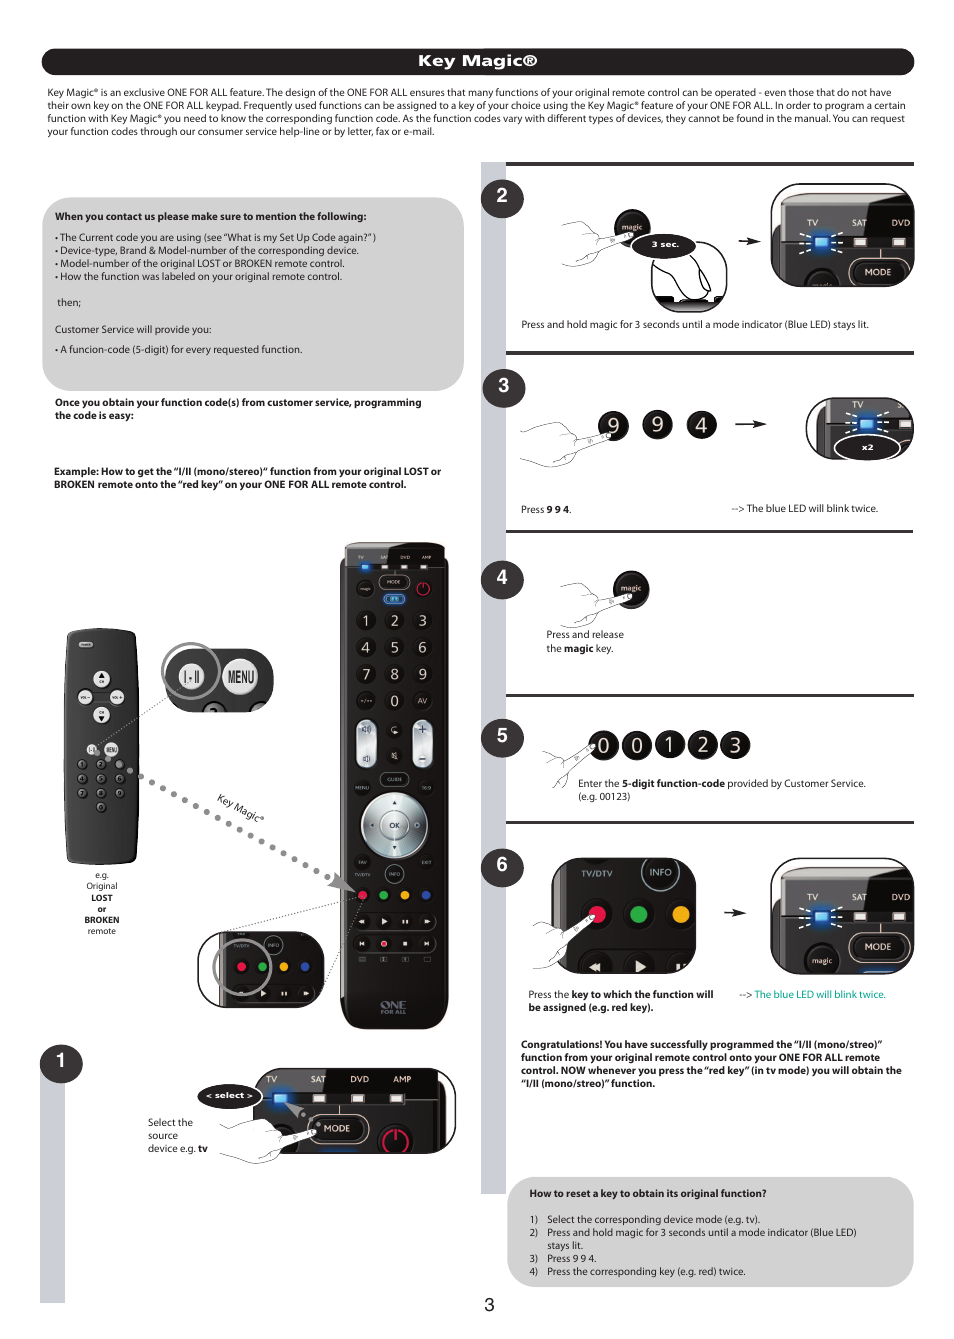 Key magic | One for All URC 7140 Essence 4 User Manual | Page 116 / 218